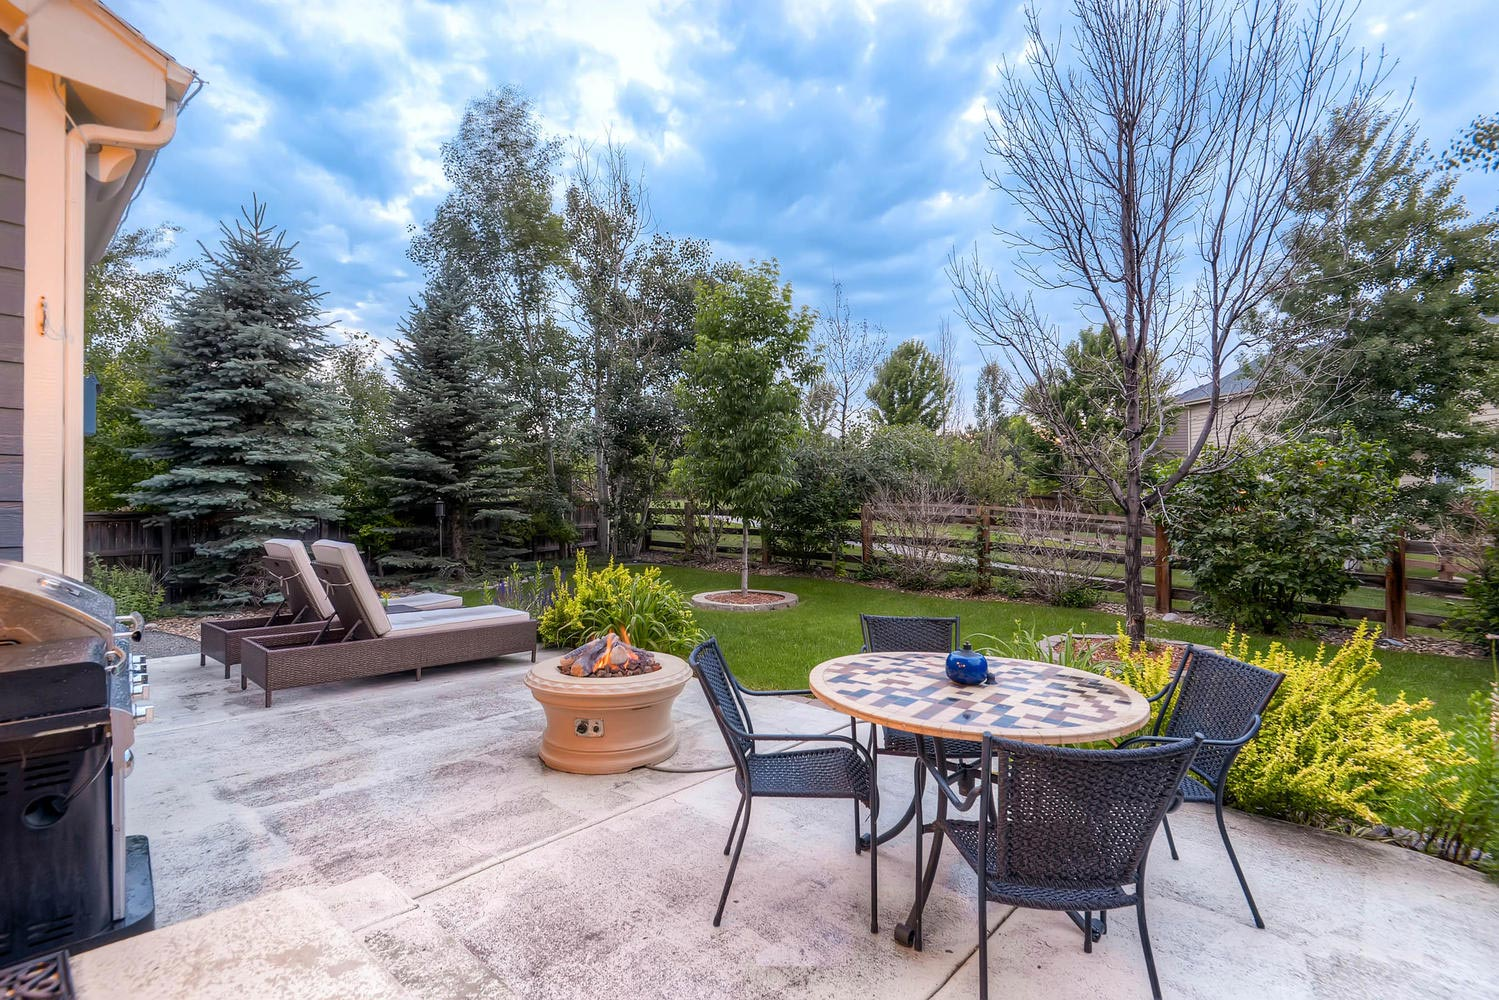 Gorgeous professionally landscaped backyard with views, charm and abundant greenery. Also includes an over sized stamped concrete patio